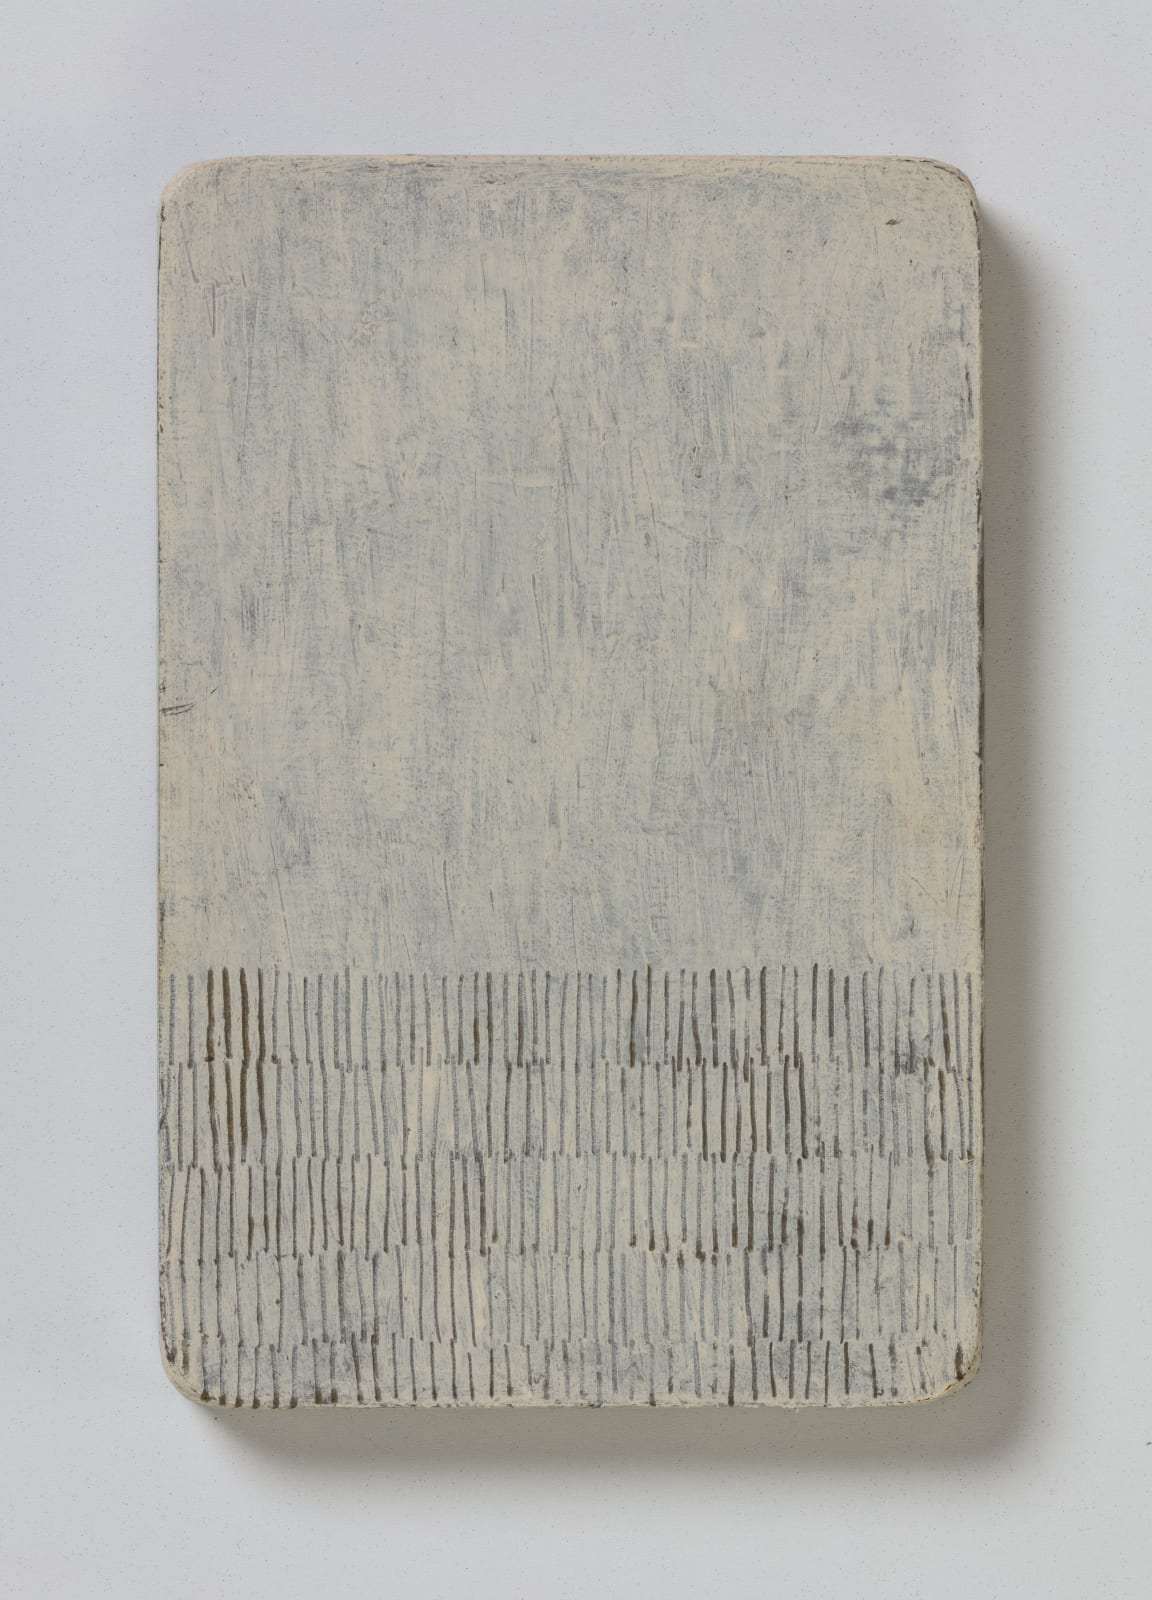 No.10, from flume series, 2020 oil on paper on wood 20.5 x 13.5 cm / 8 x 5.3 in Sold